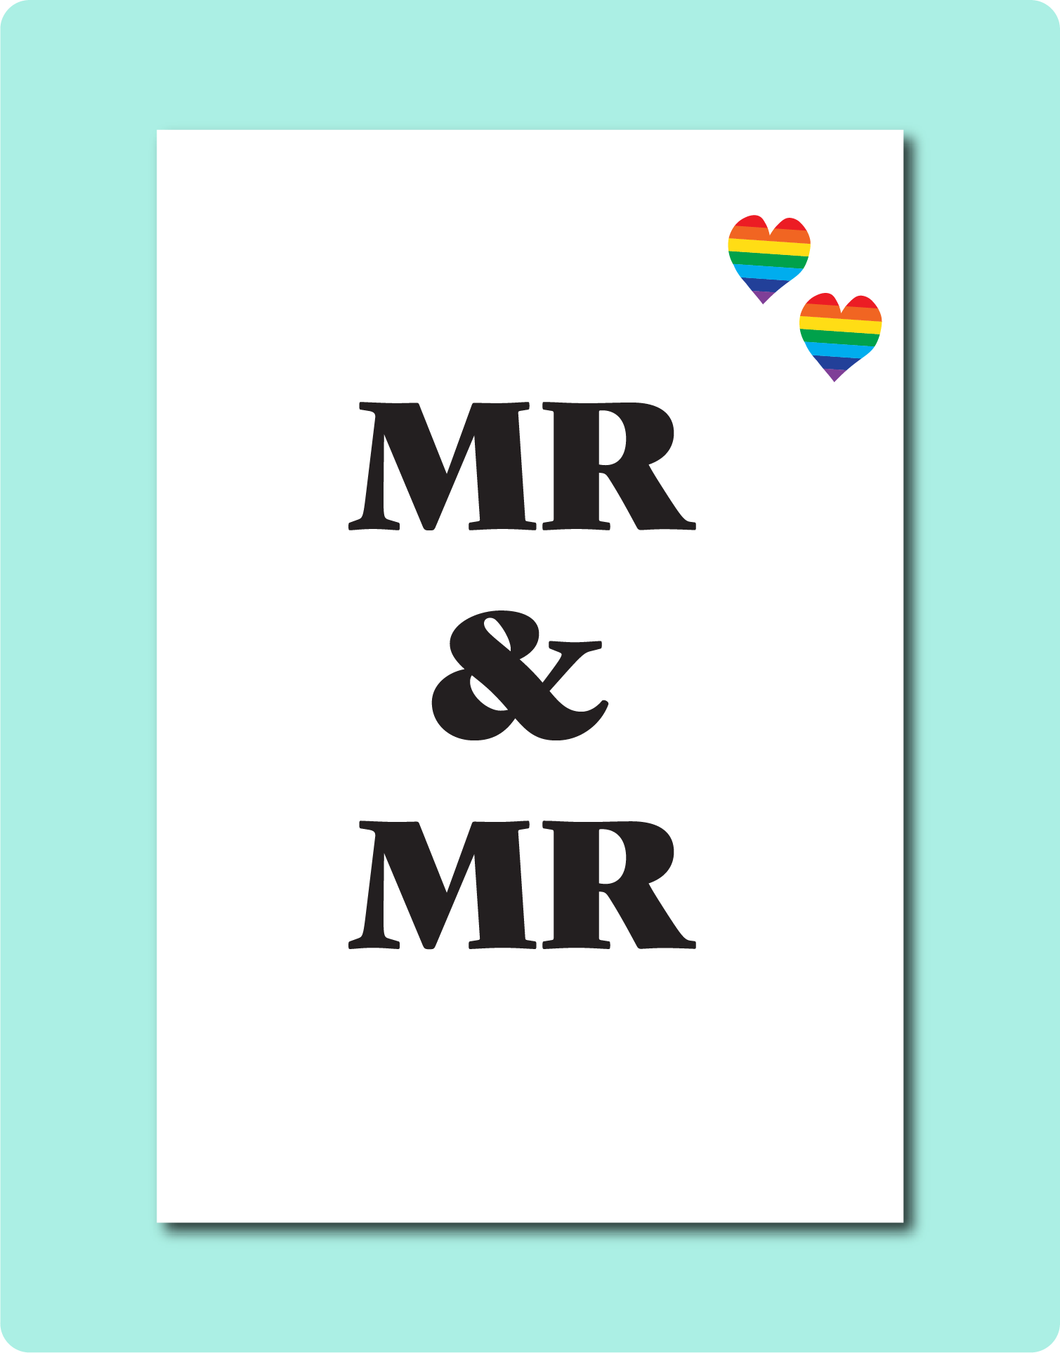 MR & MR LGBTQ Gay Lesbian Wedding Engagement Greeting Card with MR MR letters and two rainbow love hearts in top right corner